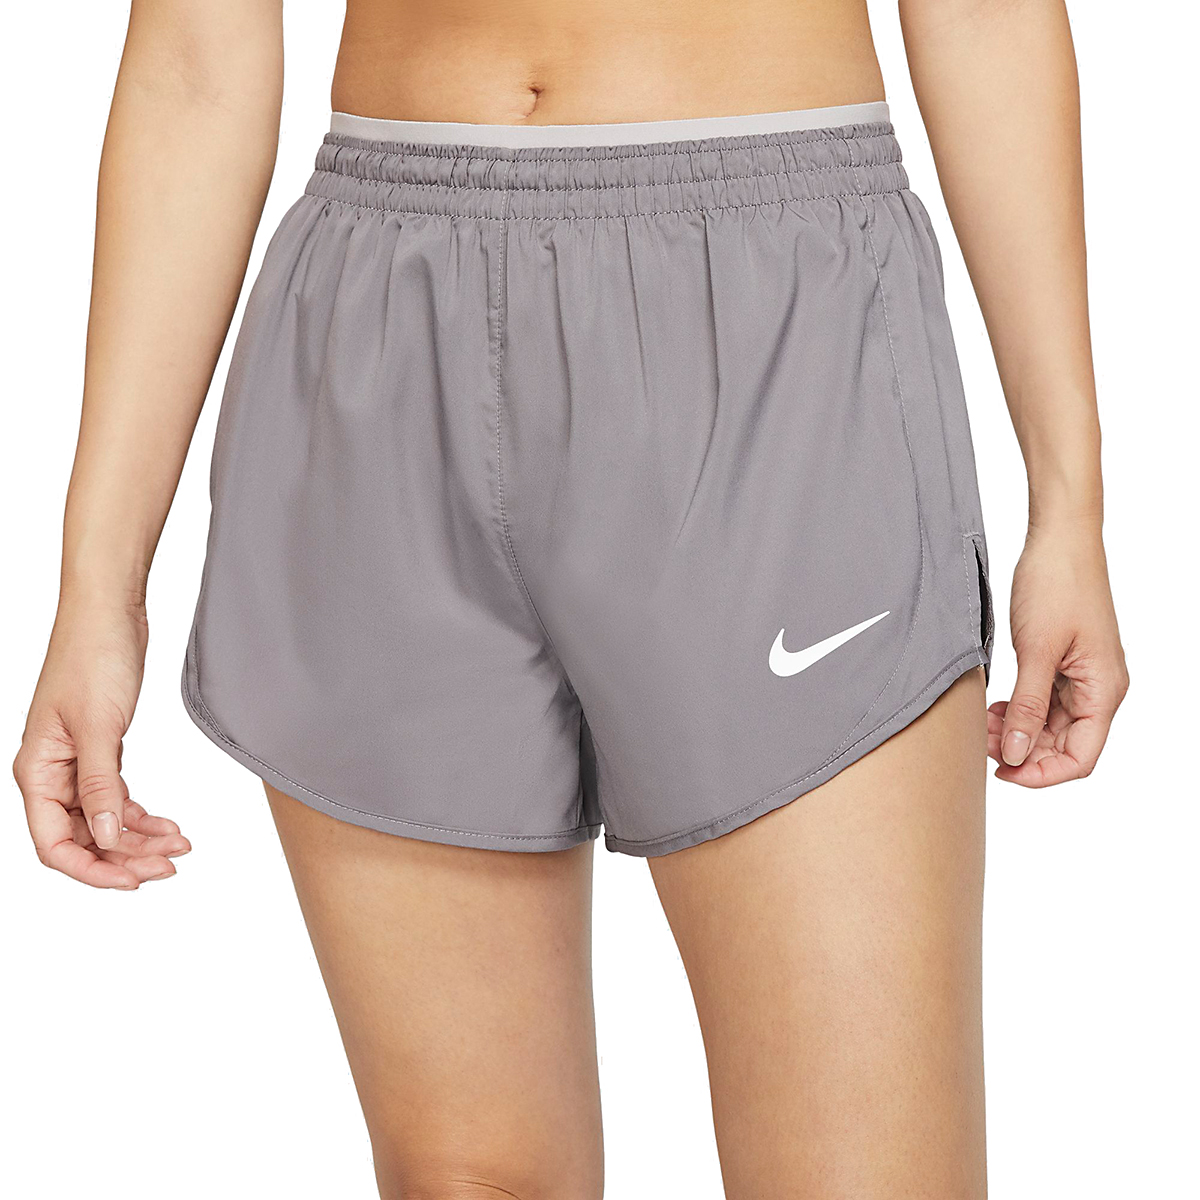 Women's Nike Tempo Luxe 3in Shorts - Color: Gunsmoke/Atmosphere Grey - Size: XS, Gunsmoke/Atmosphere Grey, large, image 1